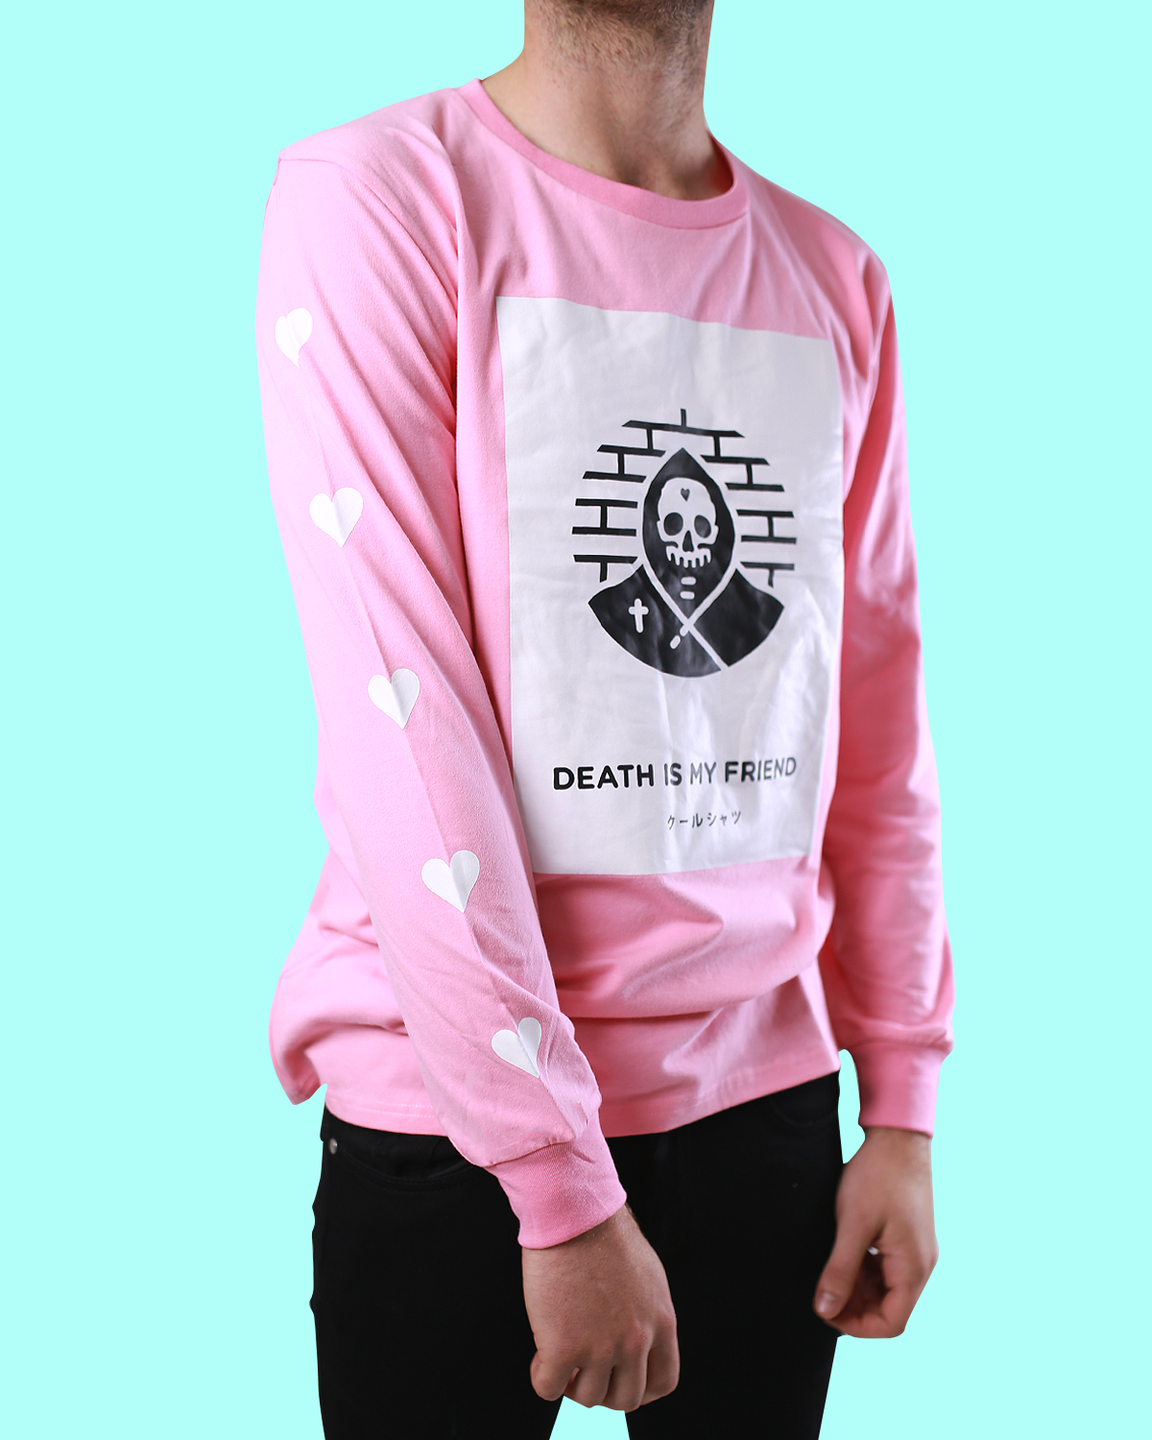 The Death is my Friend Longsleeve